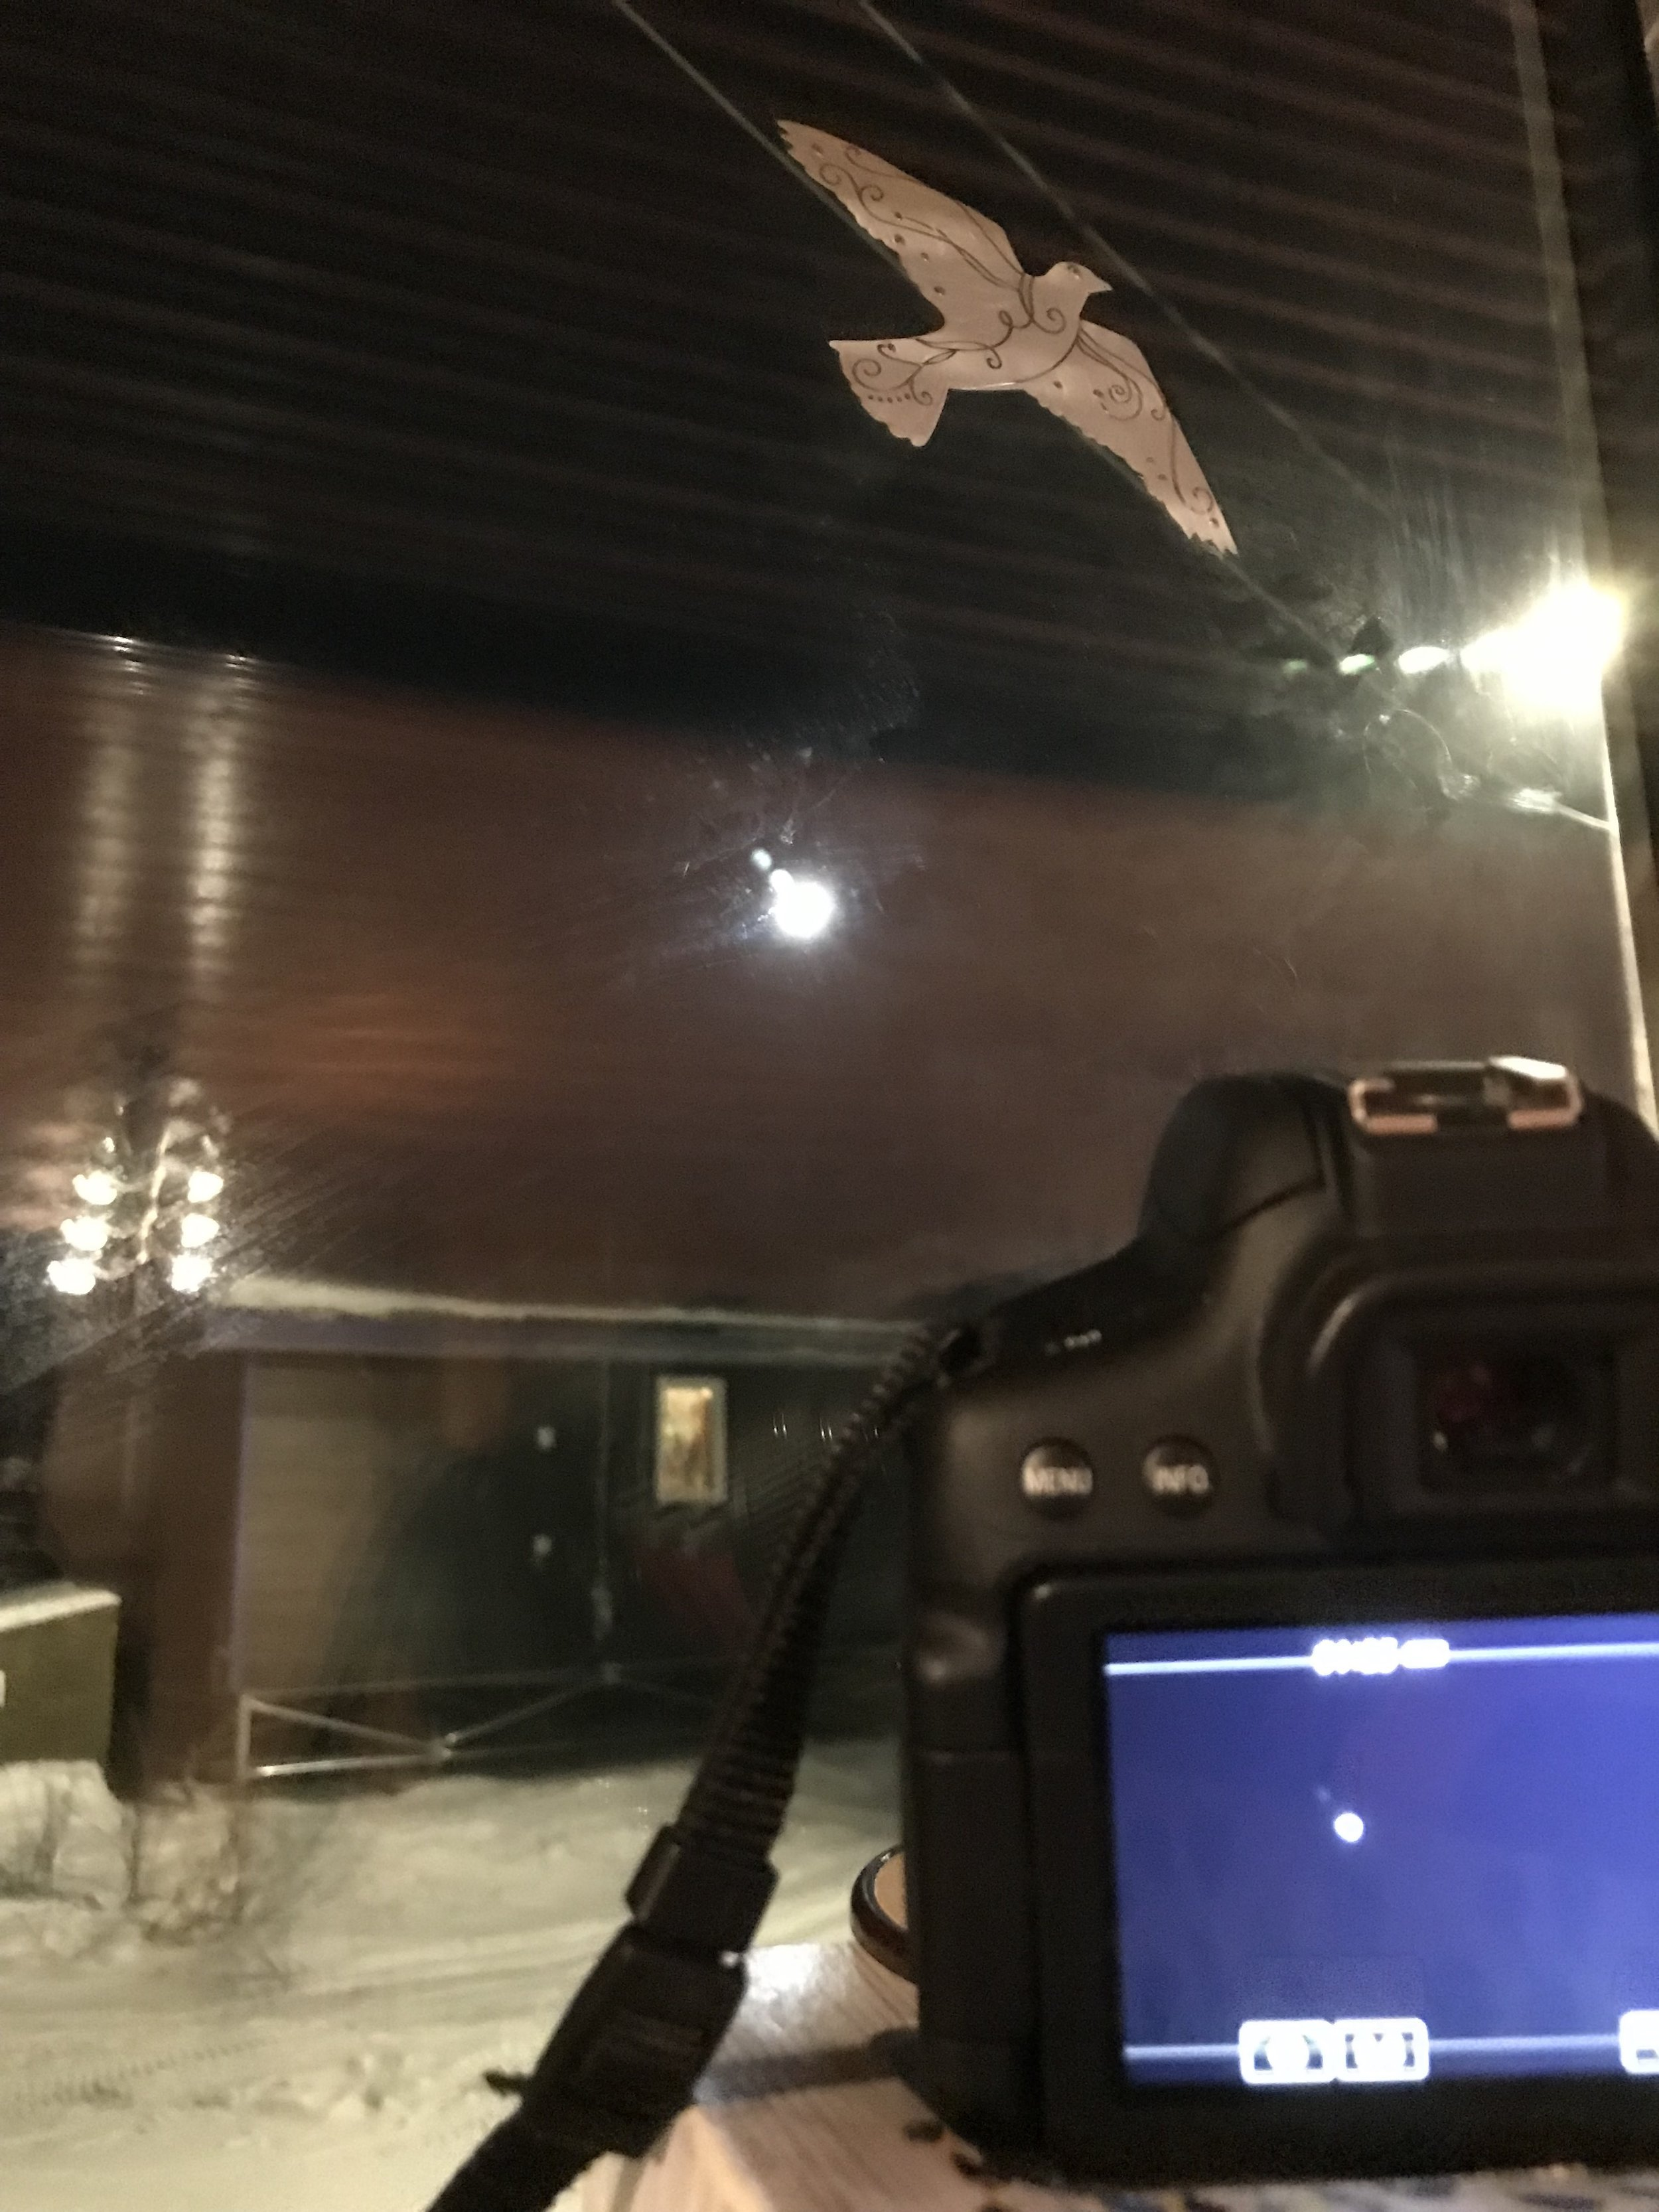 Setting the camera up, out the window and at an angle toward the moon!